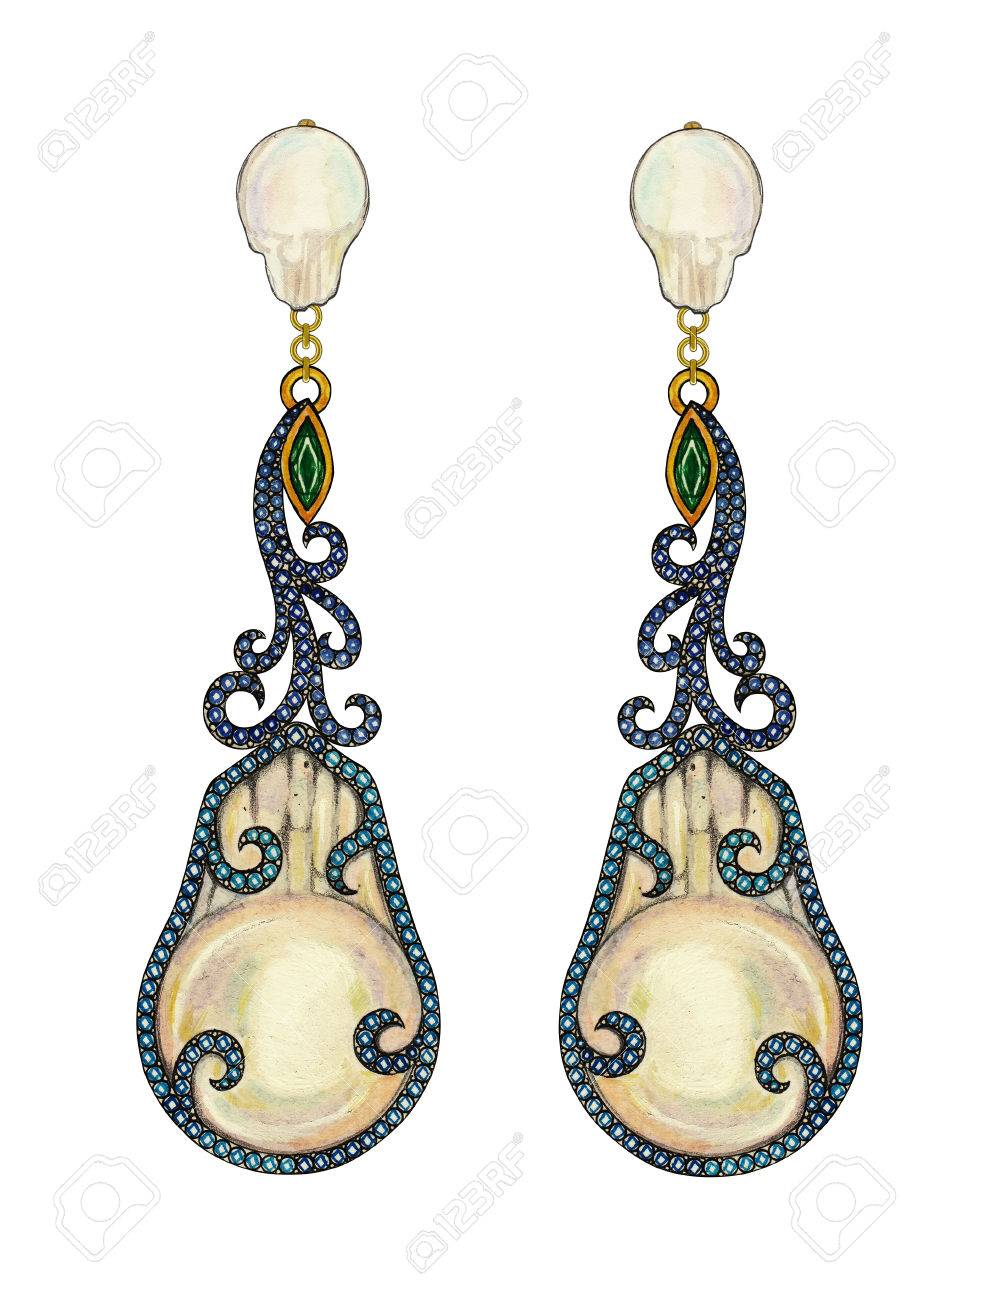 pair earrings works toah atef hb egyptian stones with glass gold b set and an crown art of